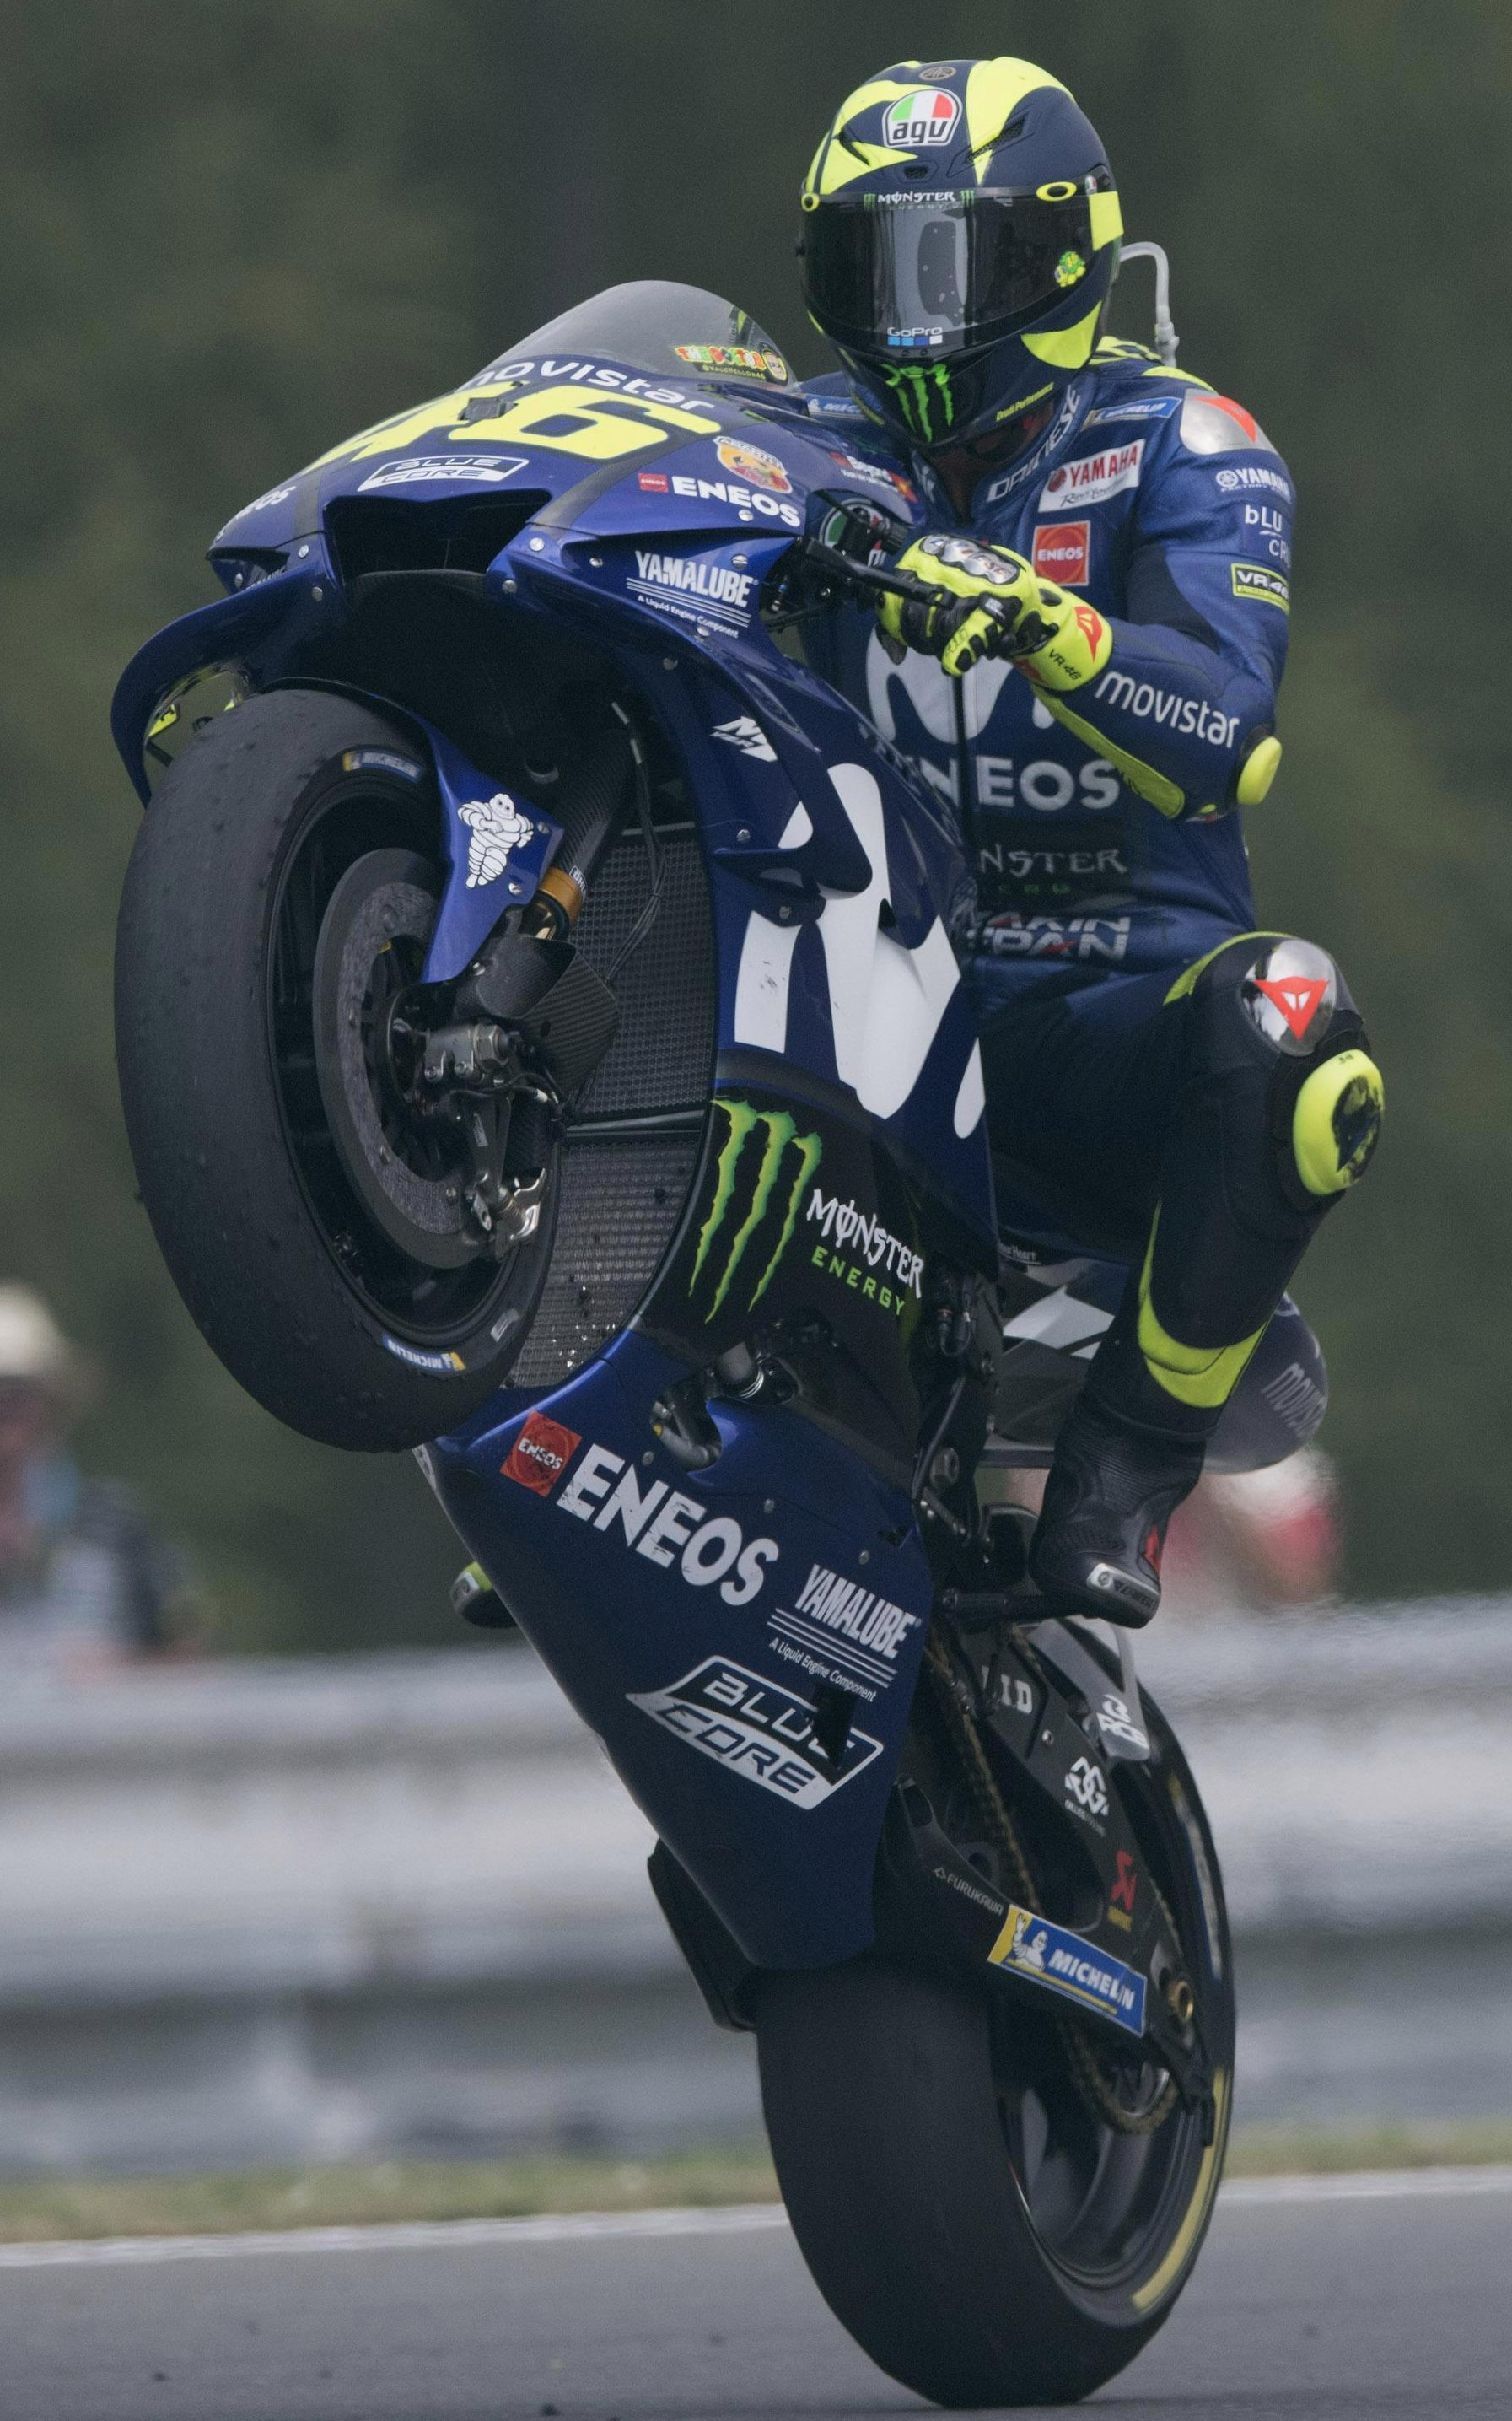 Nine-time world champion Valentino Rossi does a wheelie after finishing fourth in Brno